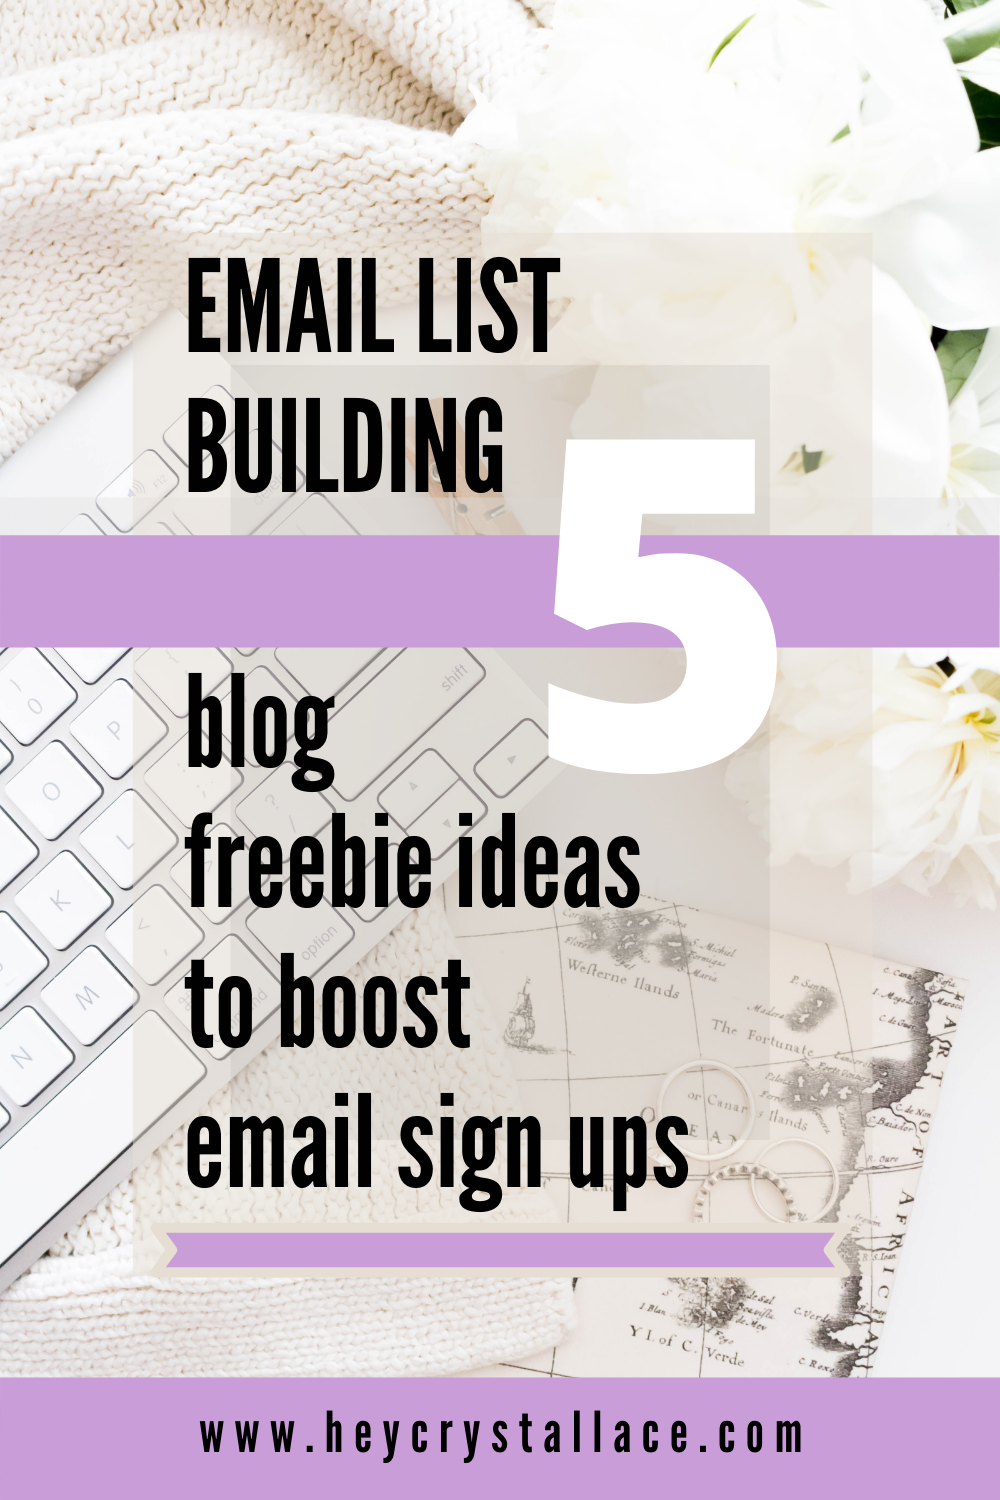 Email list building: 5 Blog Freebie Ideas to Boost Email Sign-ups